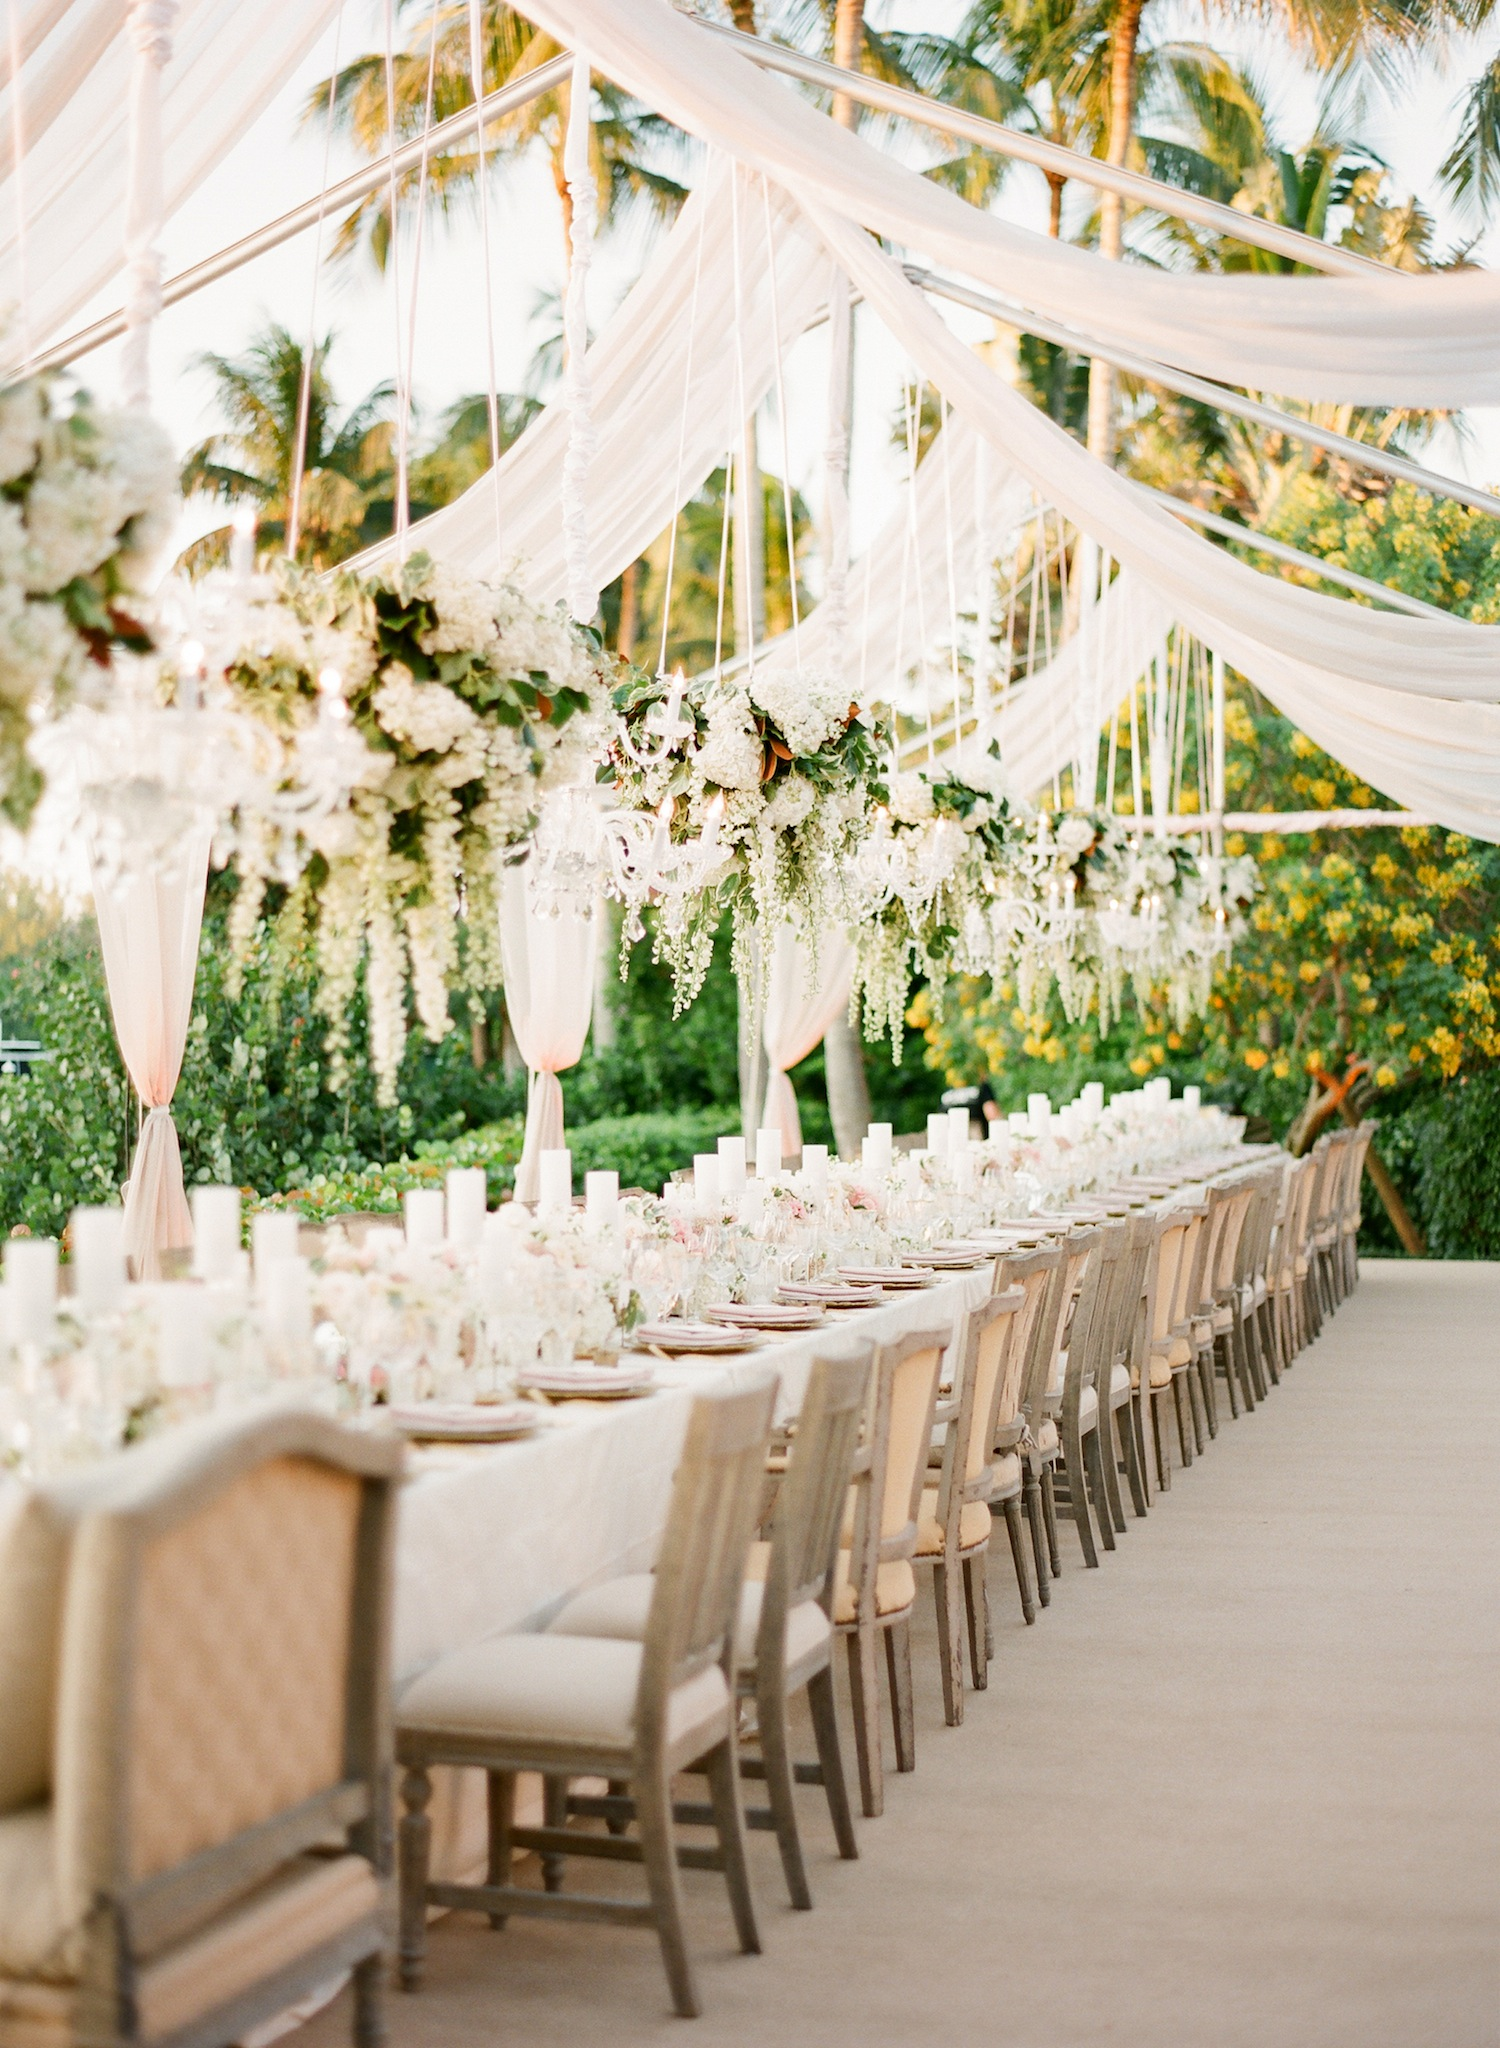 Intimate wedding with only 50 guests long table flower chandelier drapery